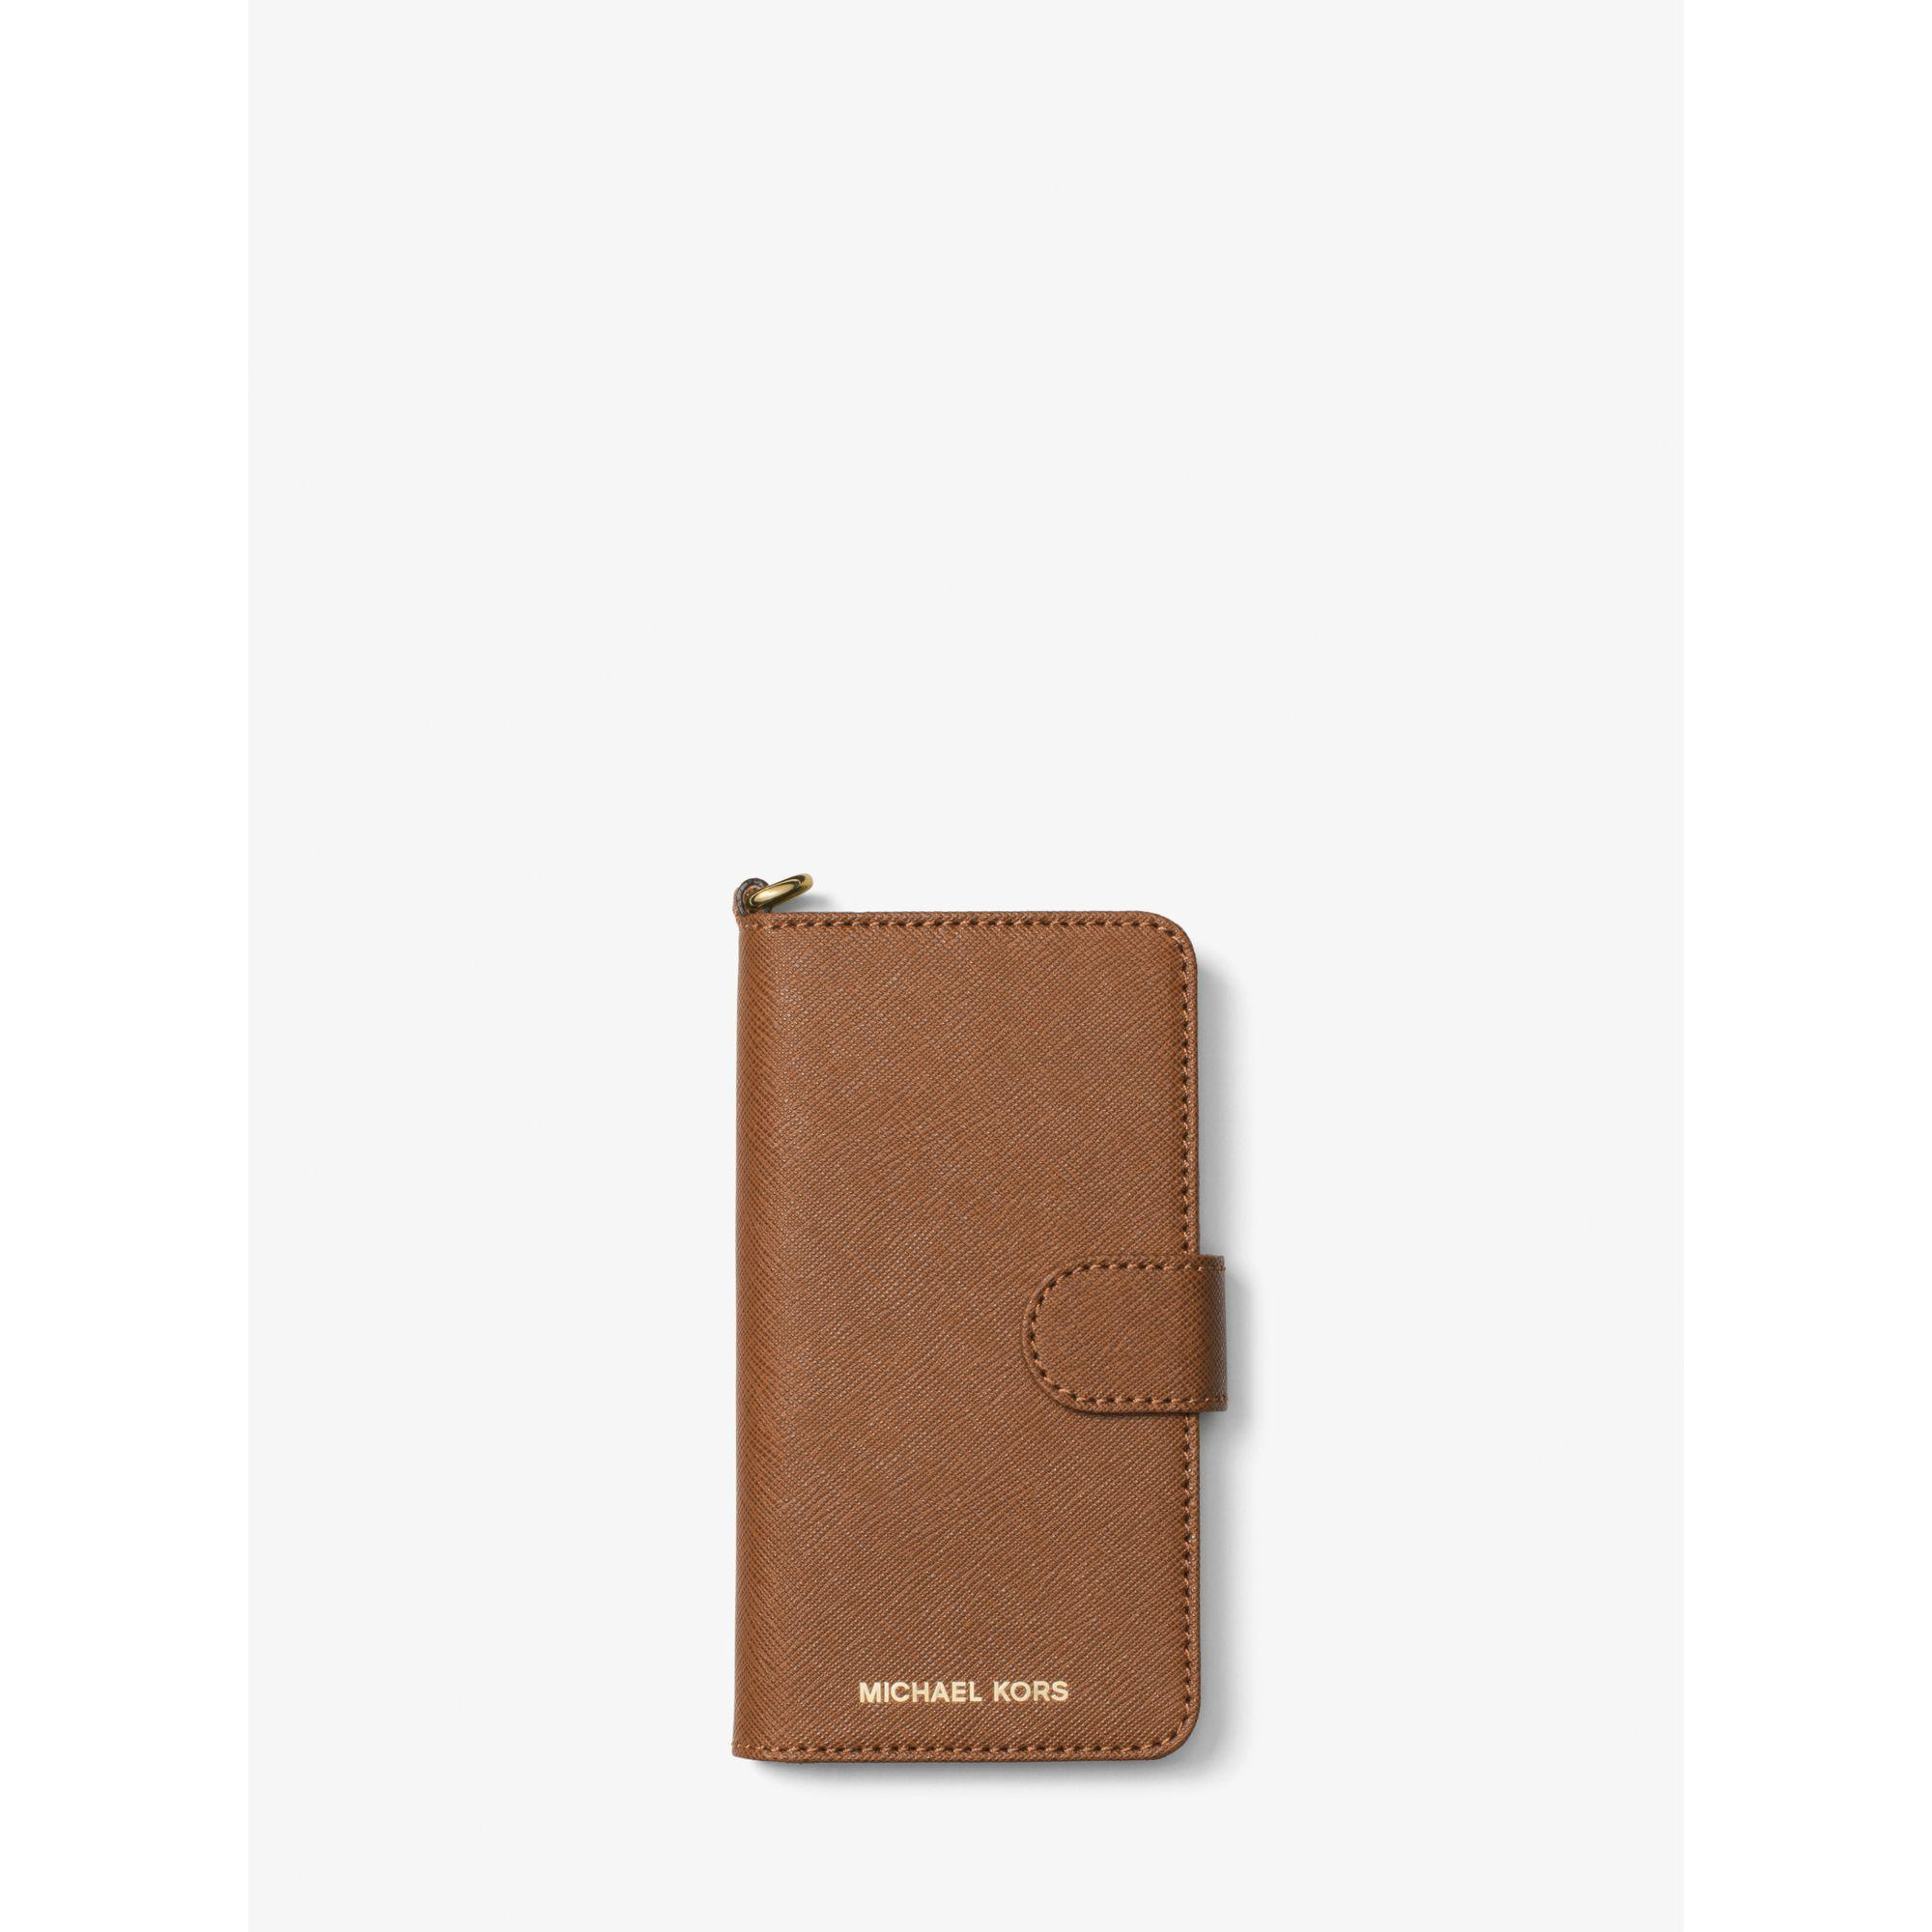 ... kors Saffiano Leather Folio Phone Case For Iphone 7 in Brown : Lyst